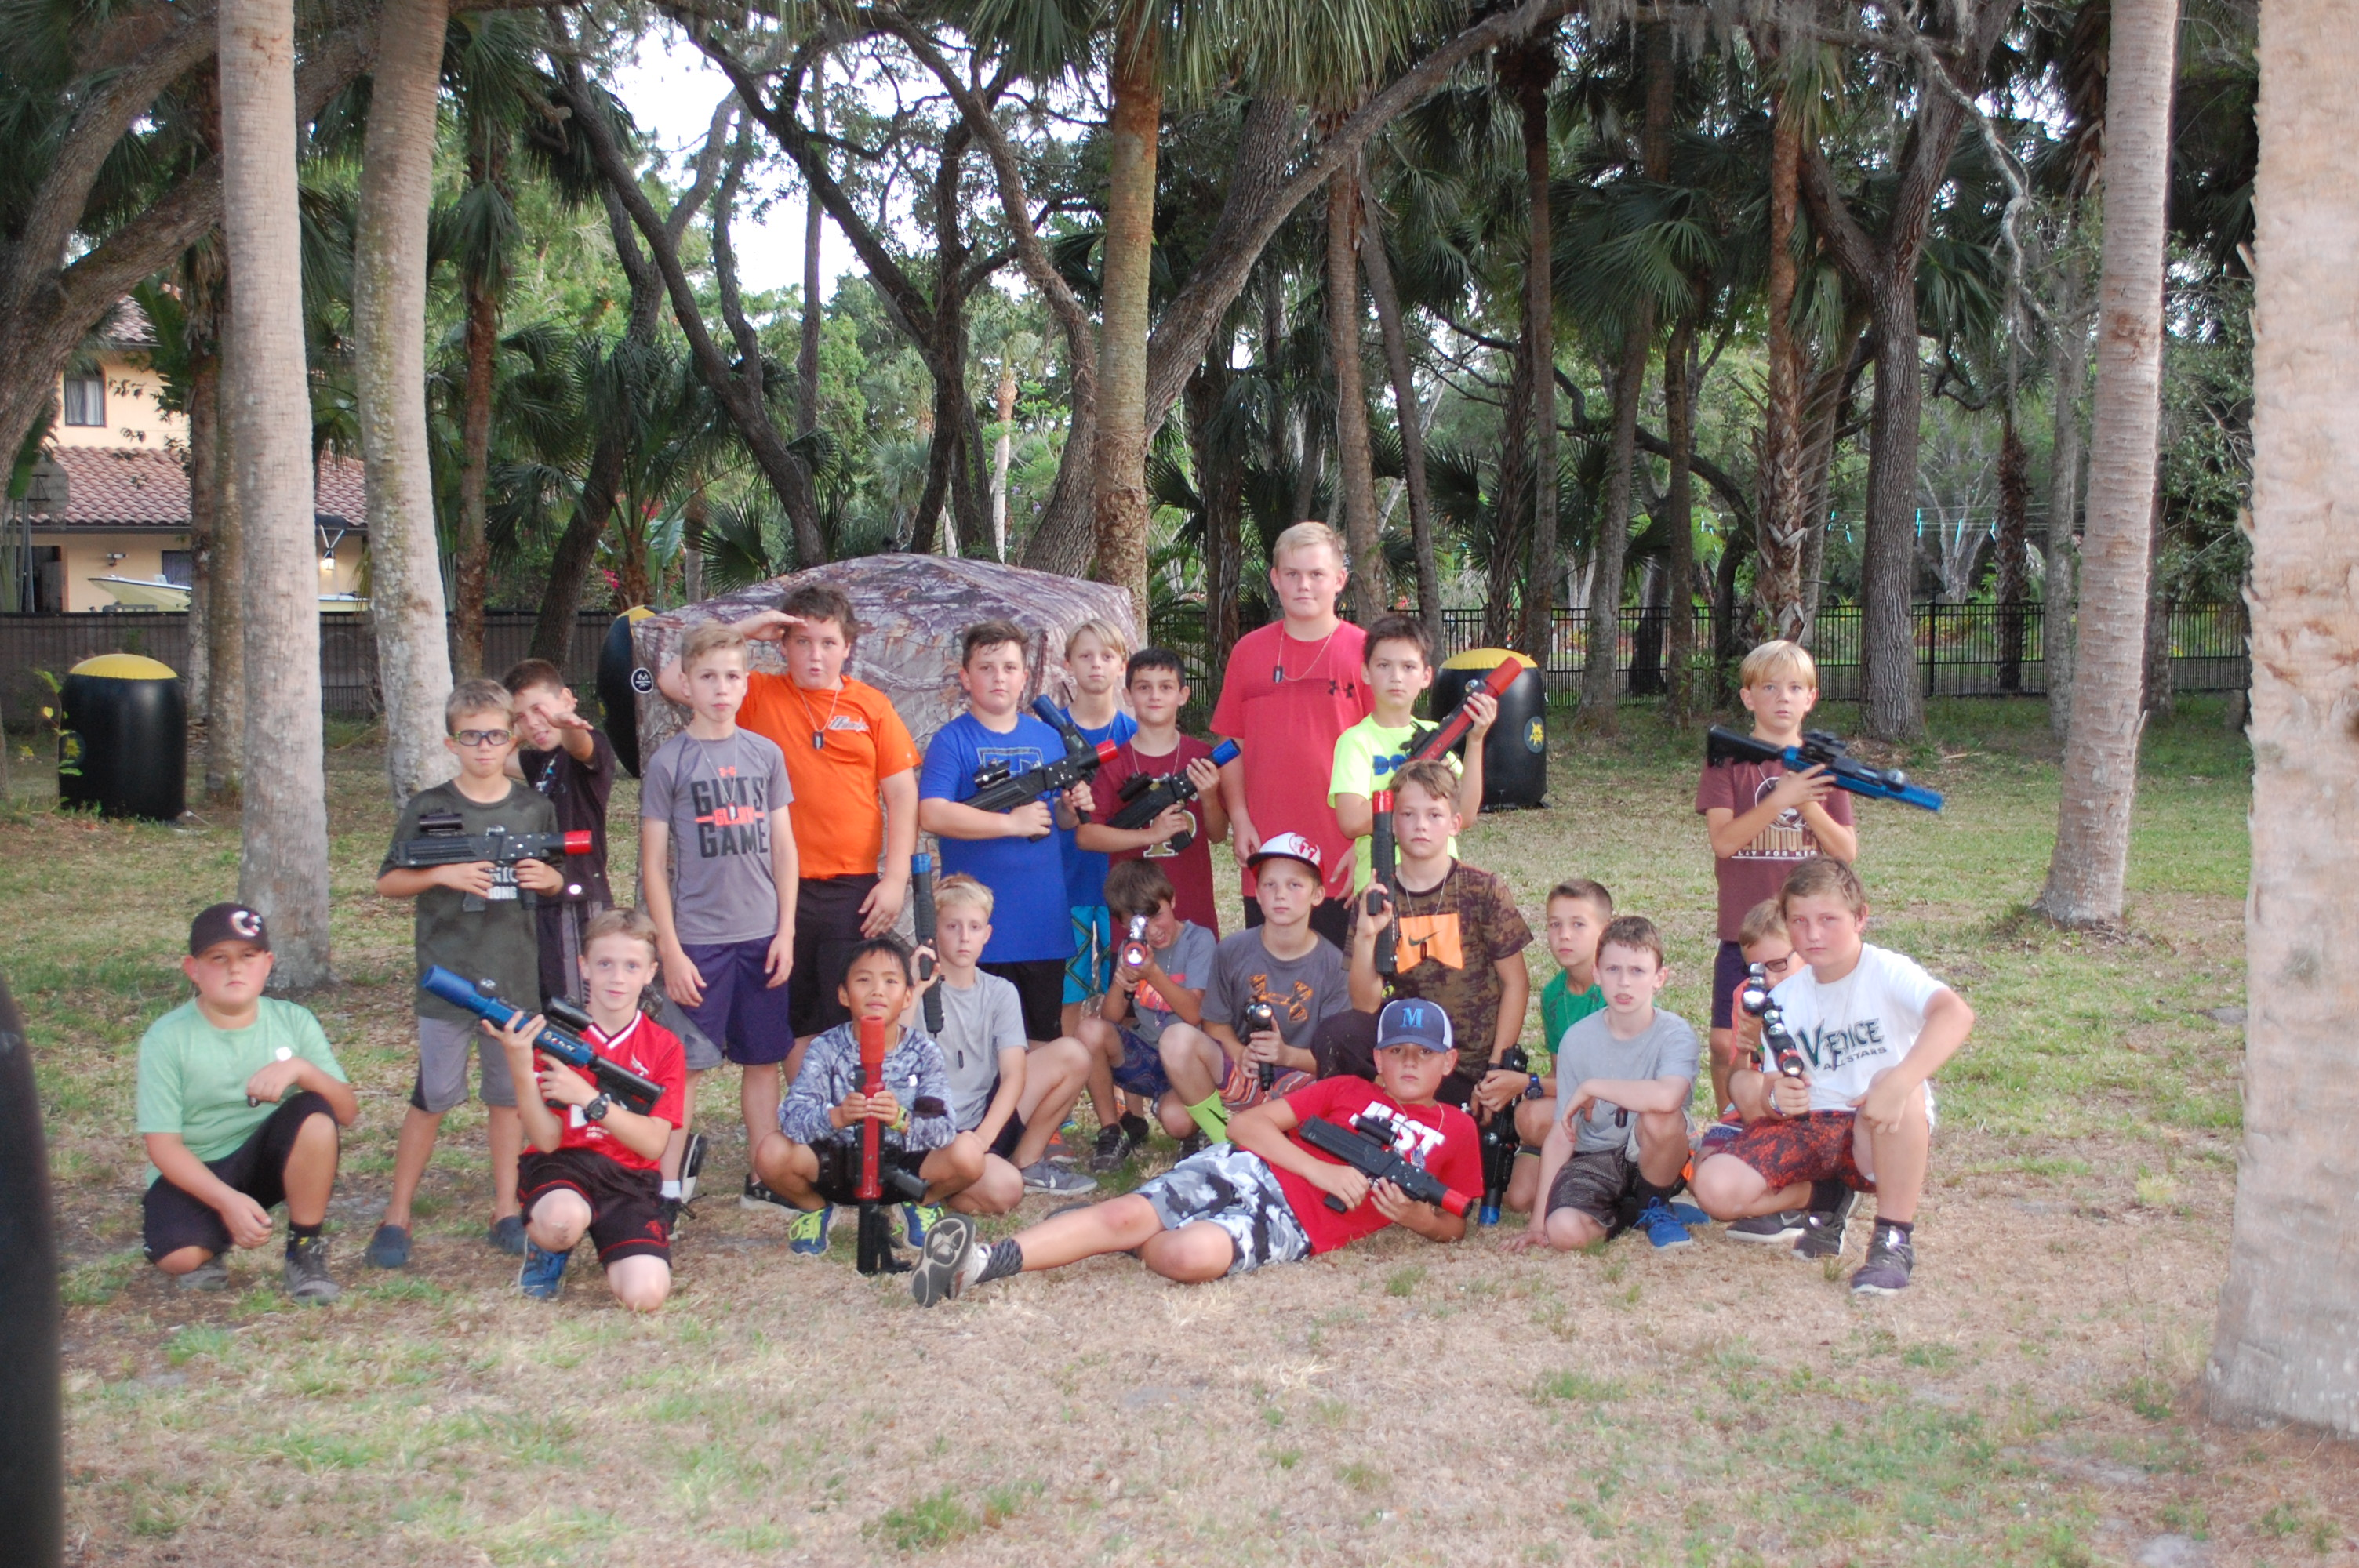 Laser tag in Ft. Myers, FL